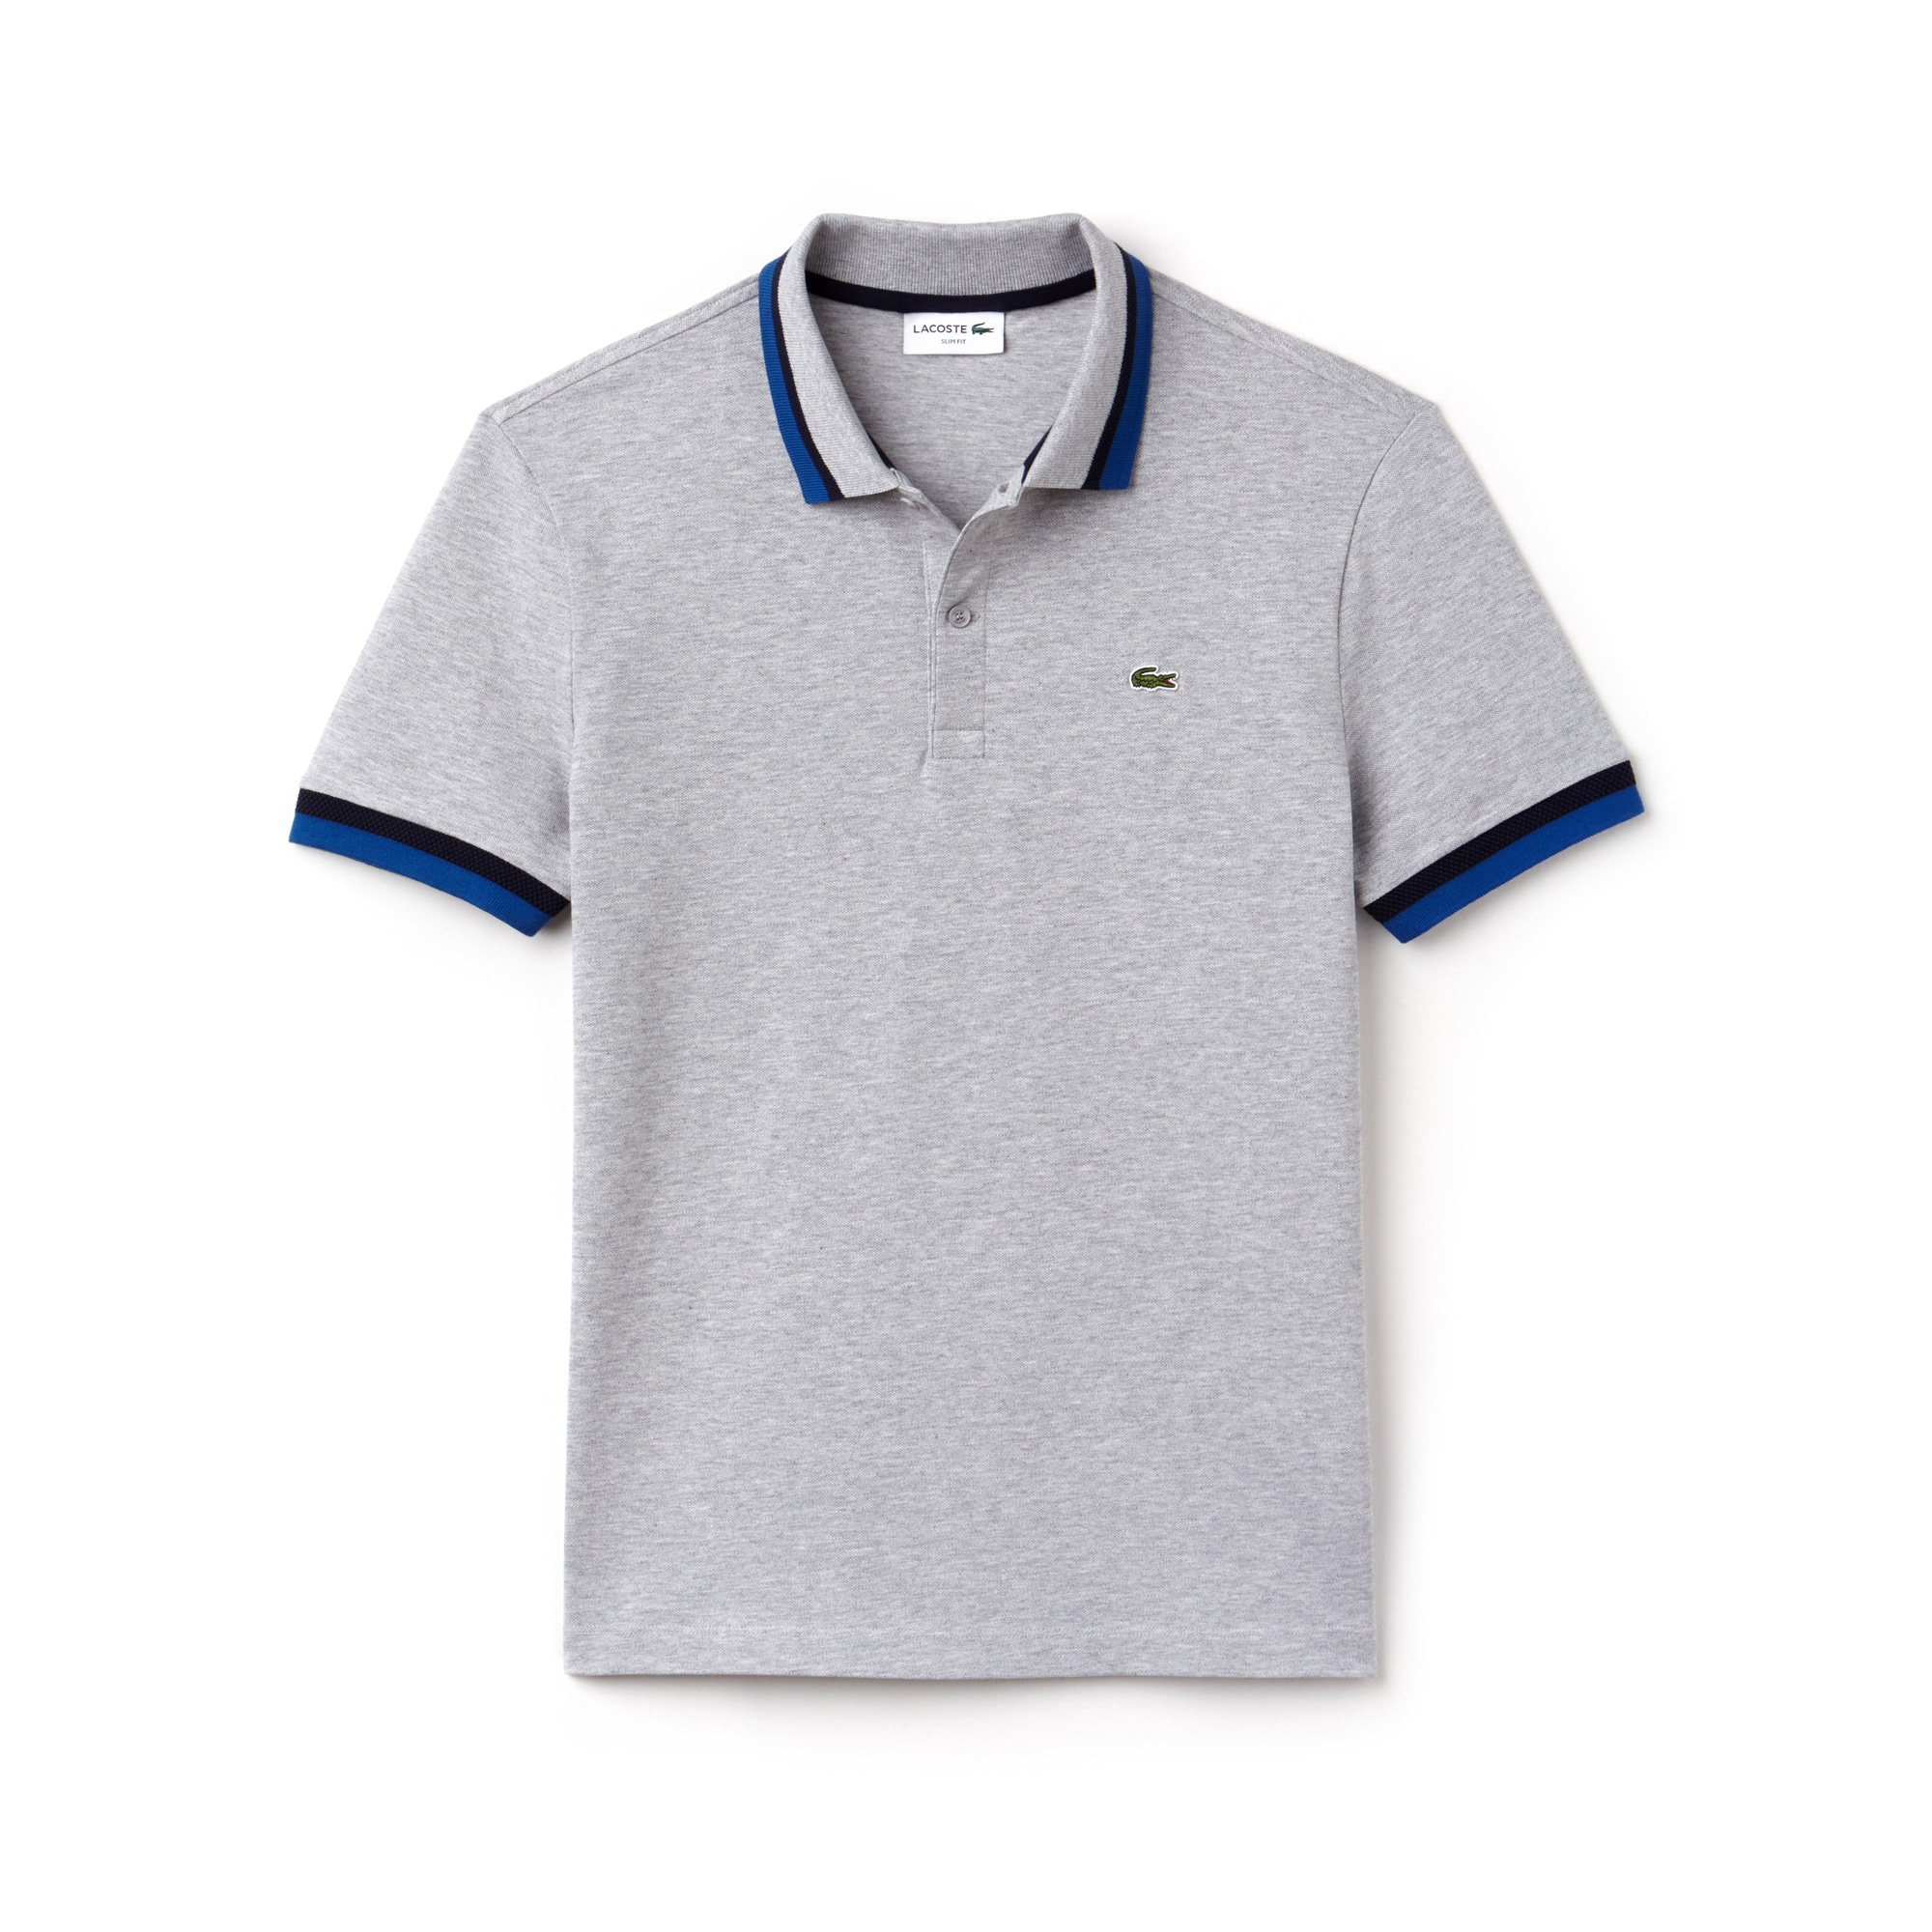 Polo slim fit Lacoste in piqué Pima stretch con dettagli a contrasto